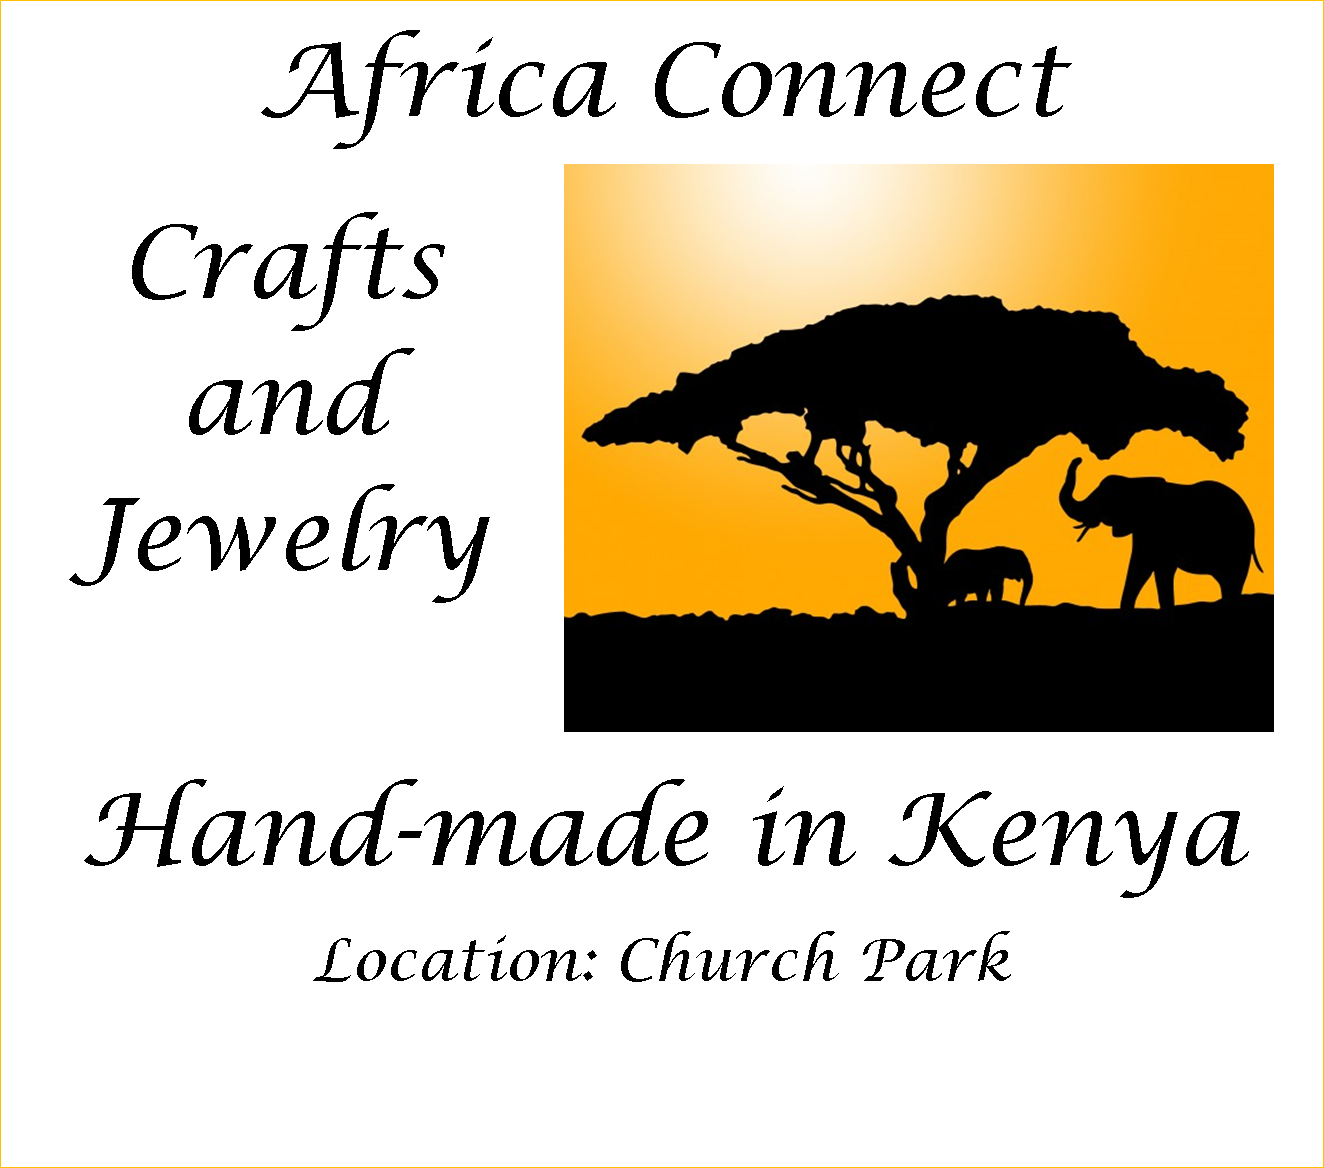 Africa Connect Crafts and Jewelry